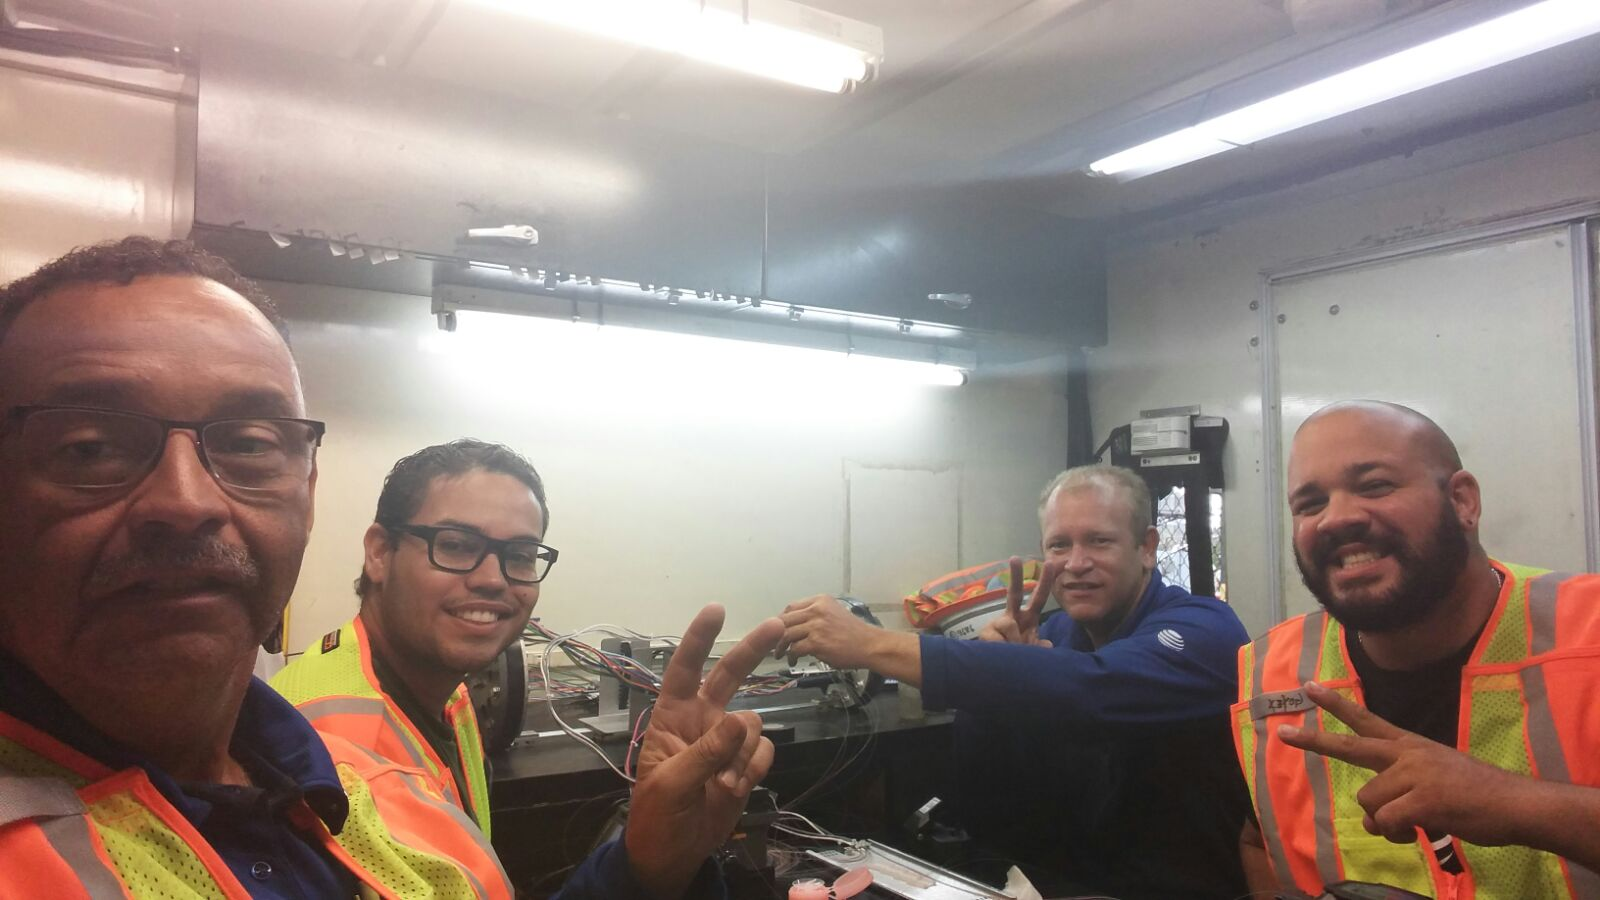 CWA workers in Puerto Rico